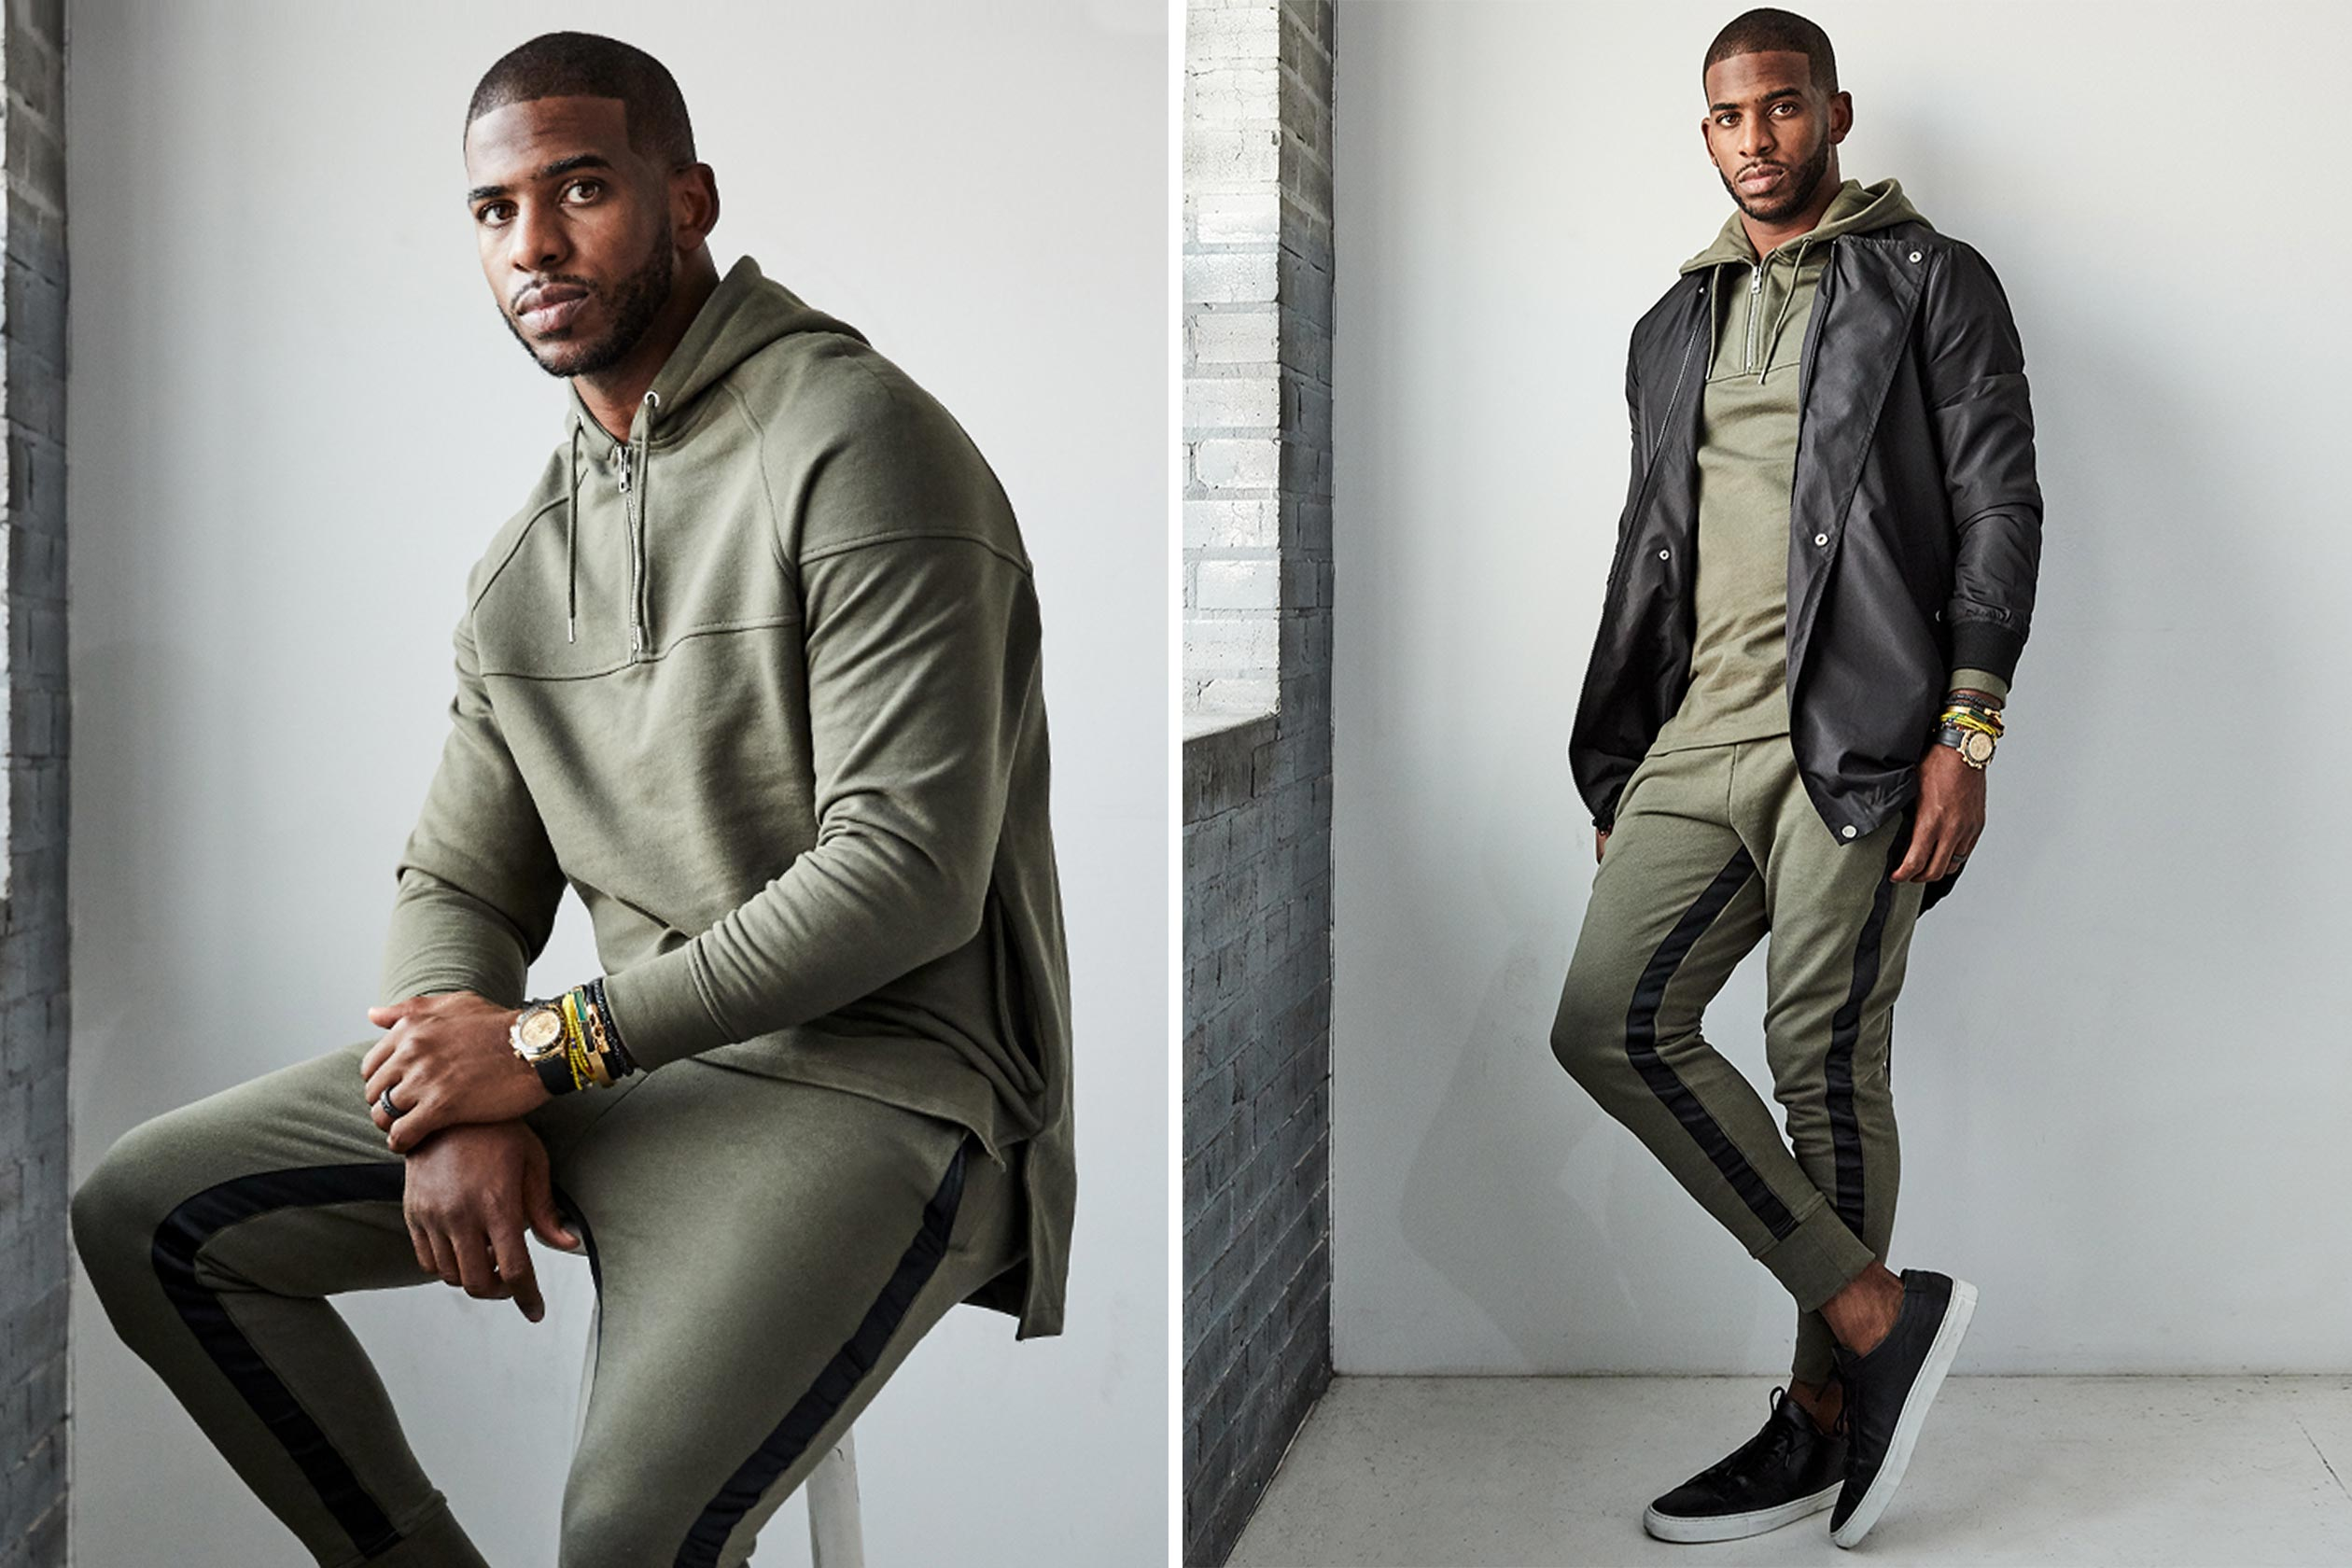 Chris Paul Fashion Style Images Galleries With A Bite